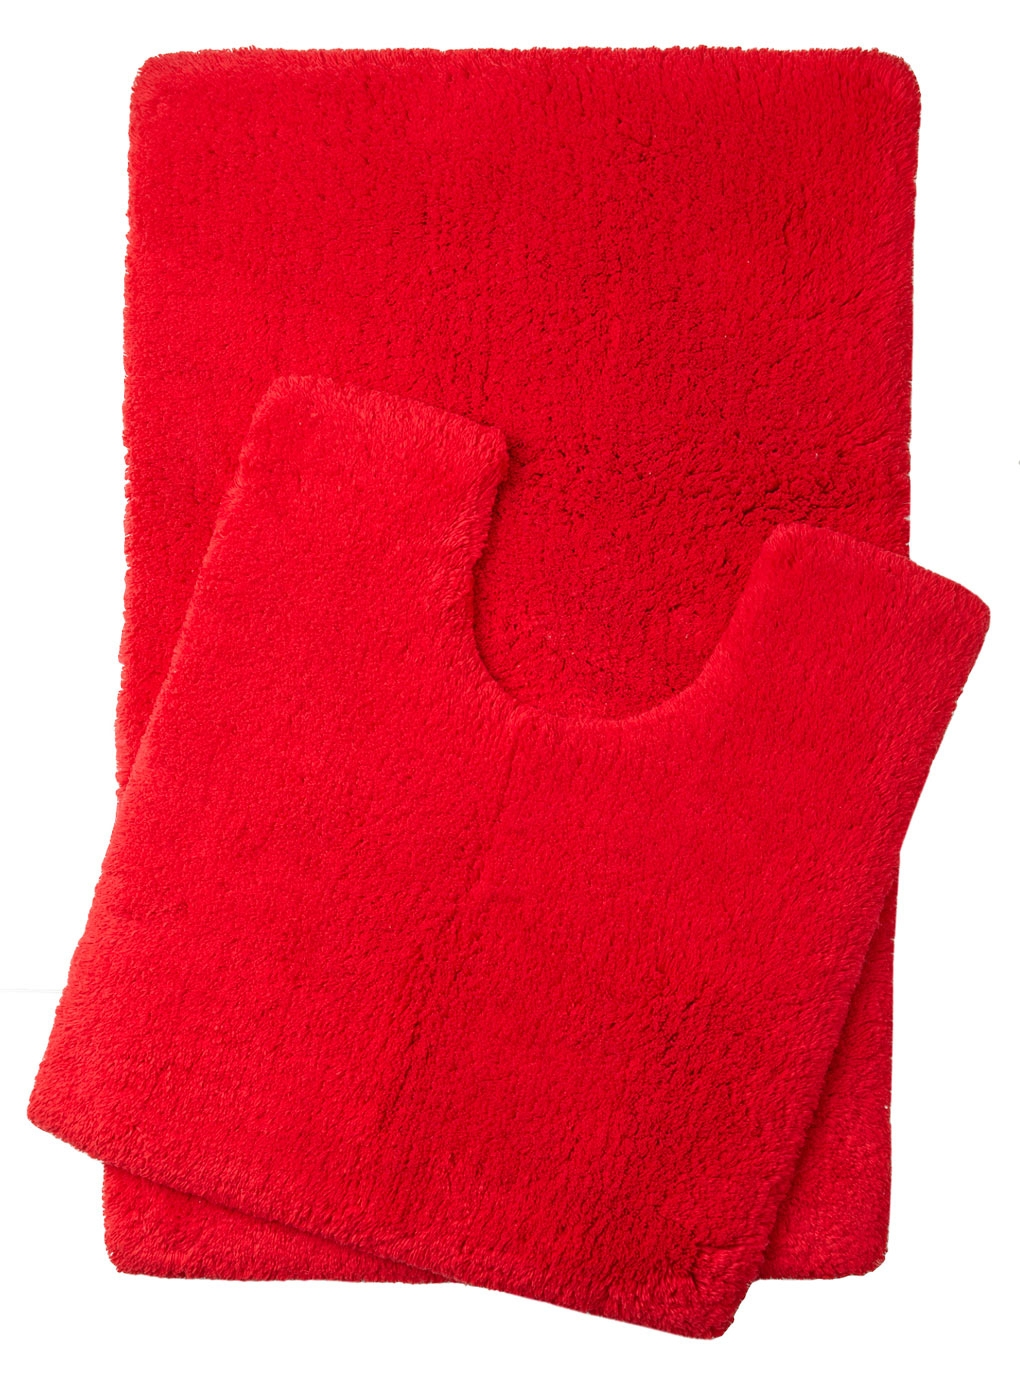 Permalink to Bright Red Bathroom Rugs